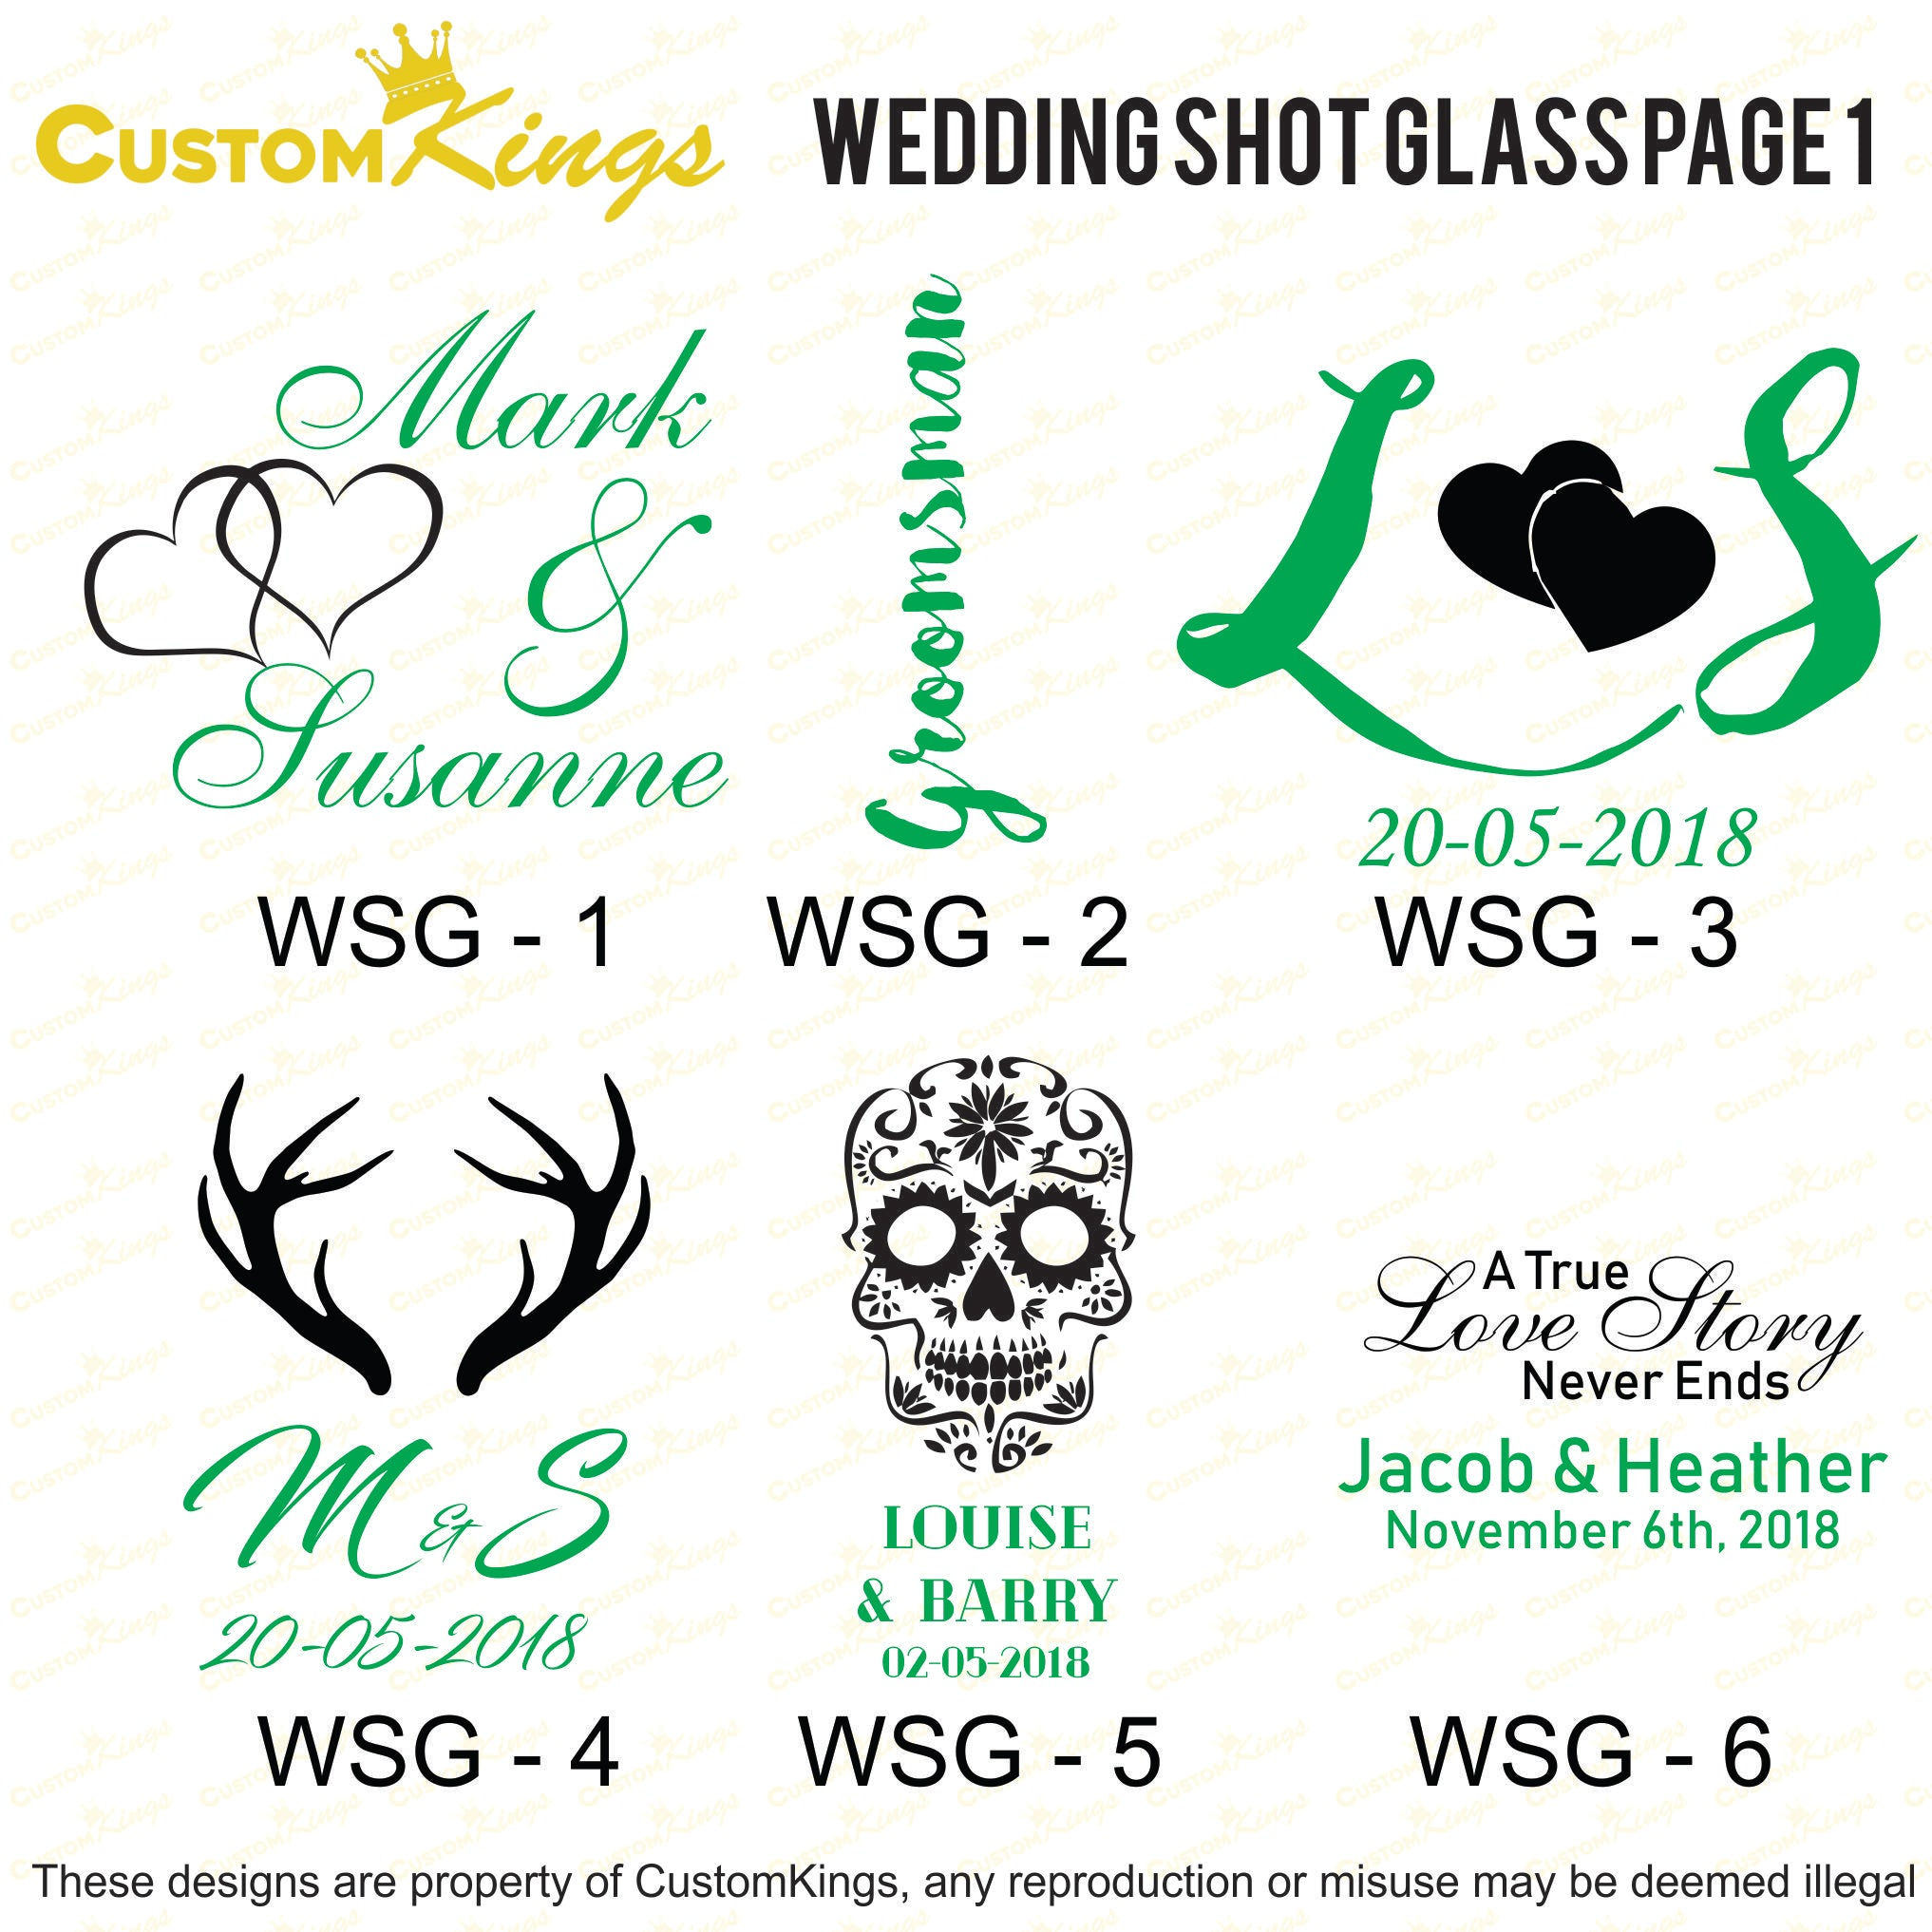 Engraved Wedding 30ml Shot Glasses